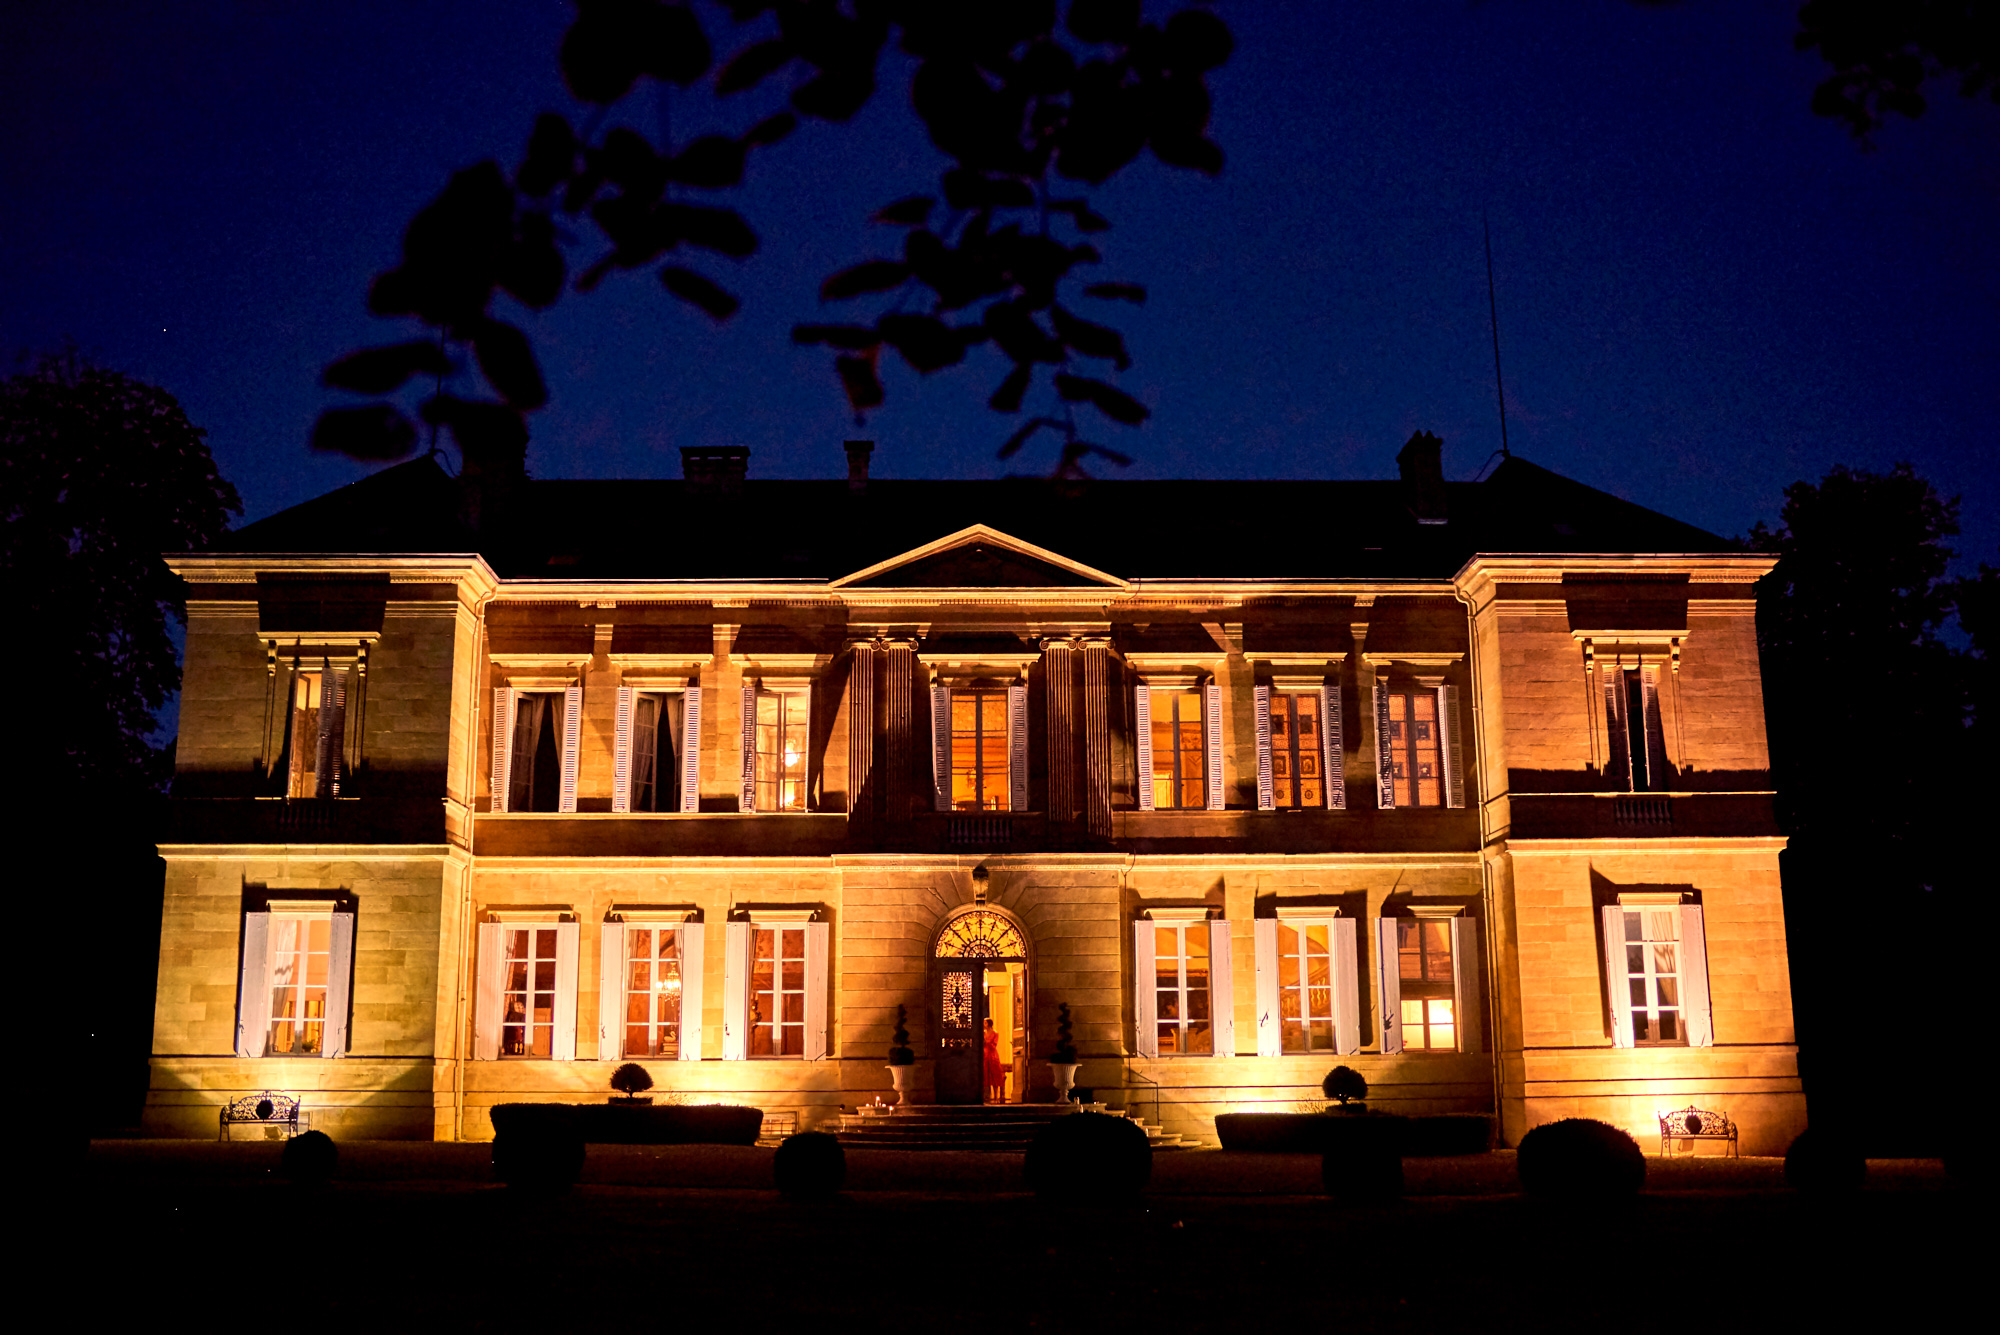 Castle by night Wedding at Chateau la Durantie Dordogne, France. Wedding photographer in Clermont-Ferrand Bordeaux